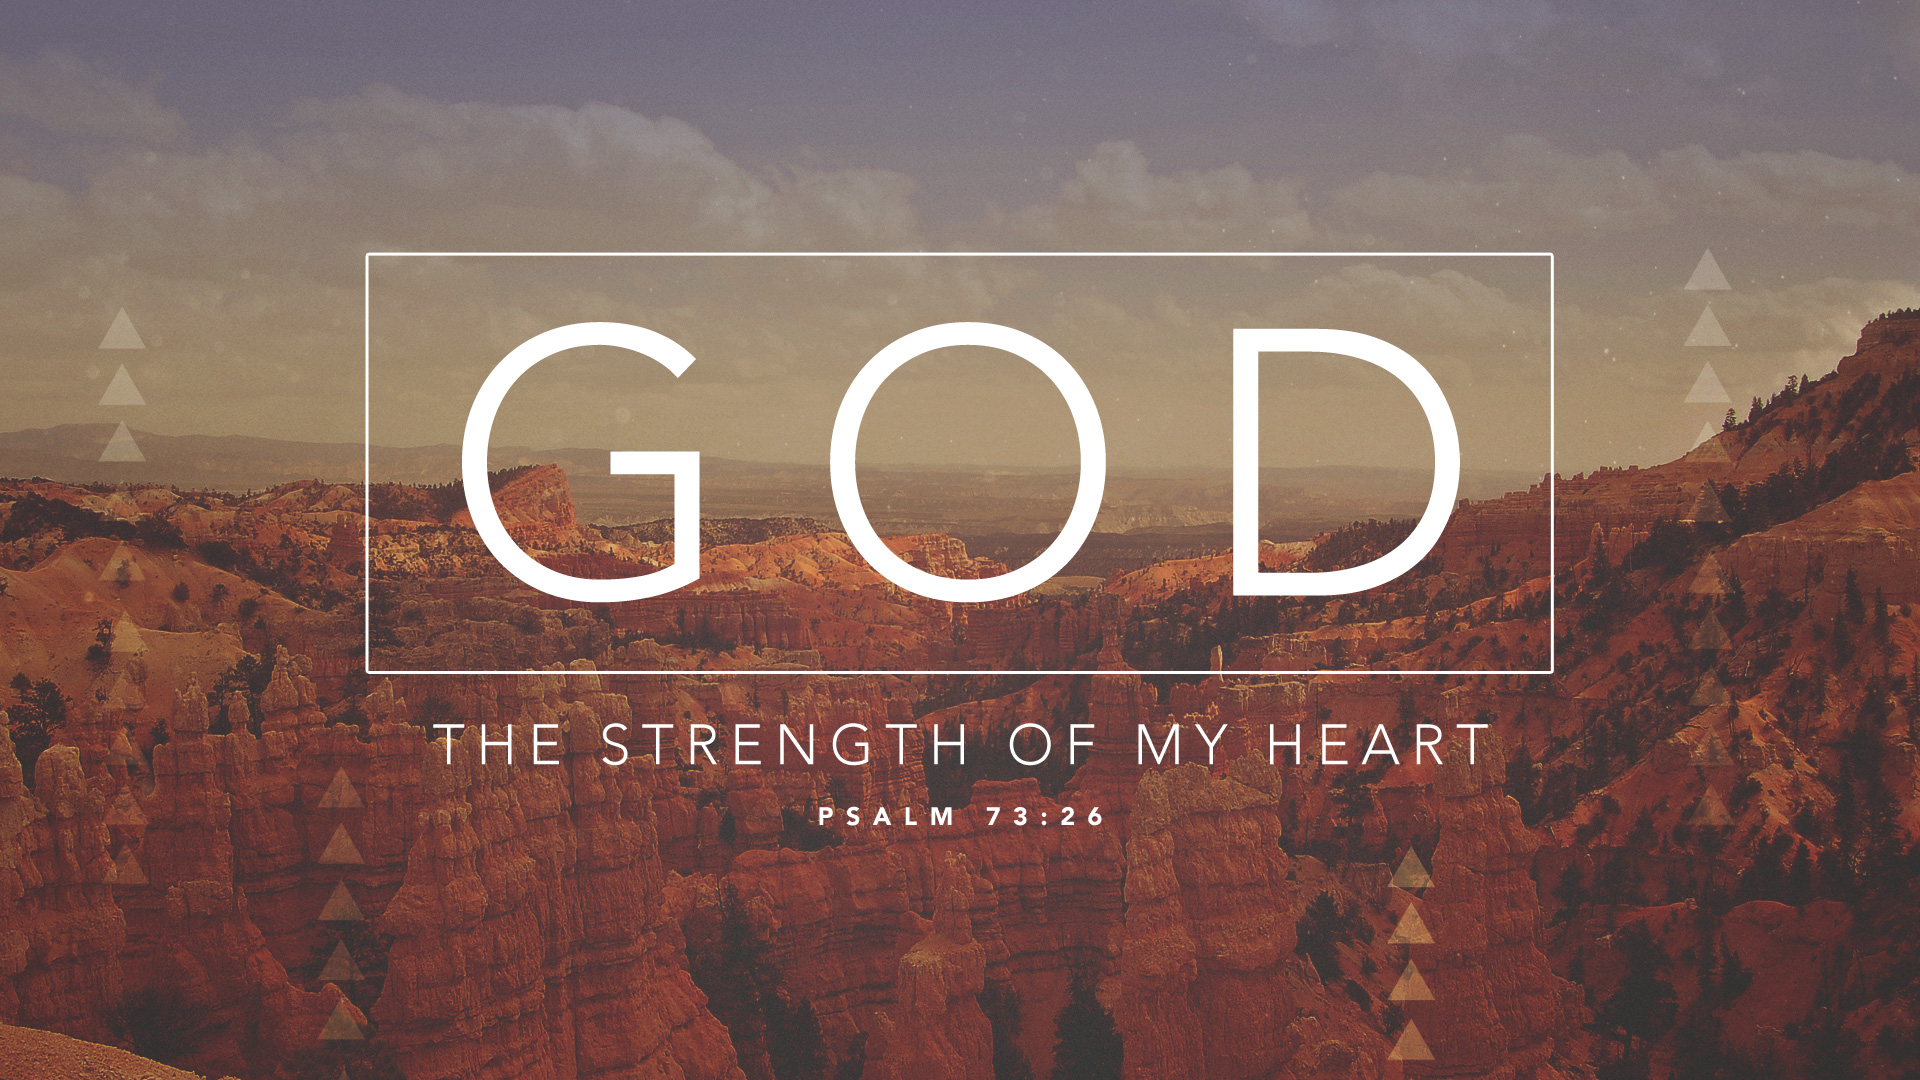 Secret Love Quotes Hd Wallpapers The Secret To Walking In God S Unwavering Strength